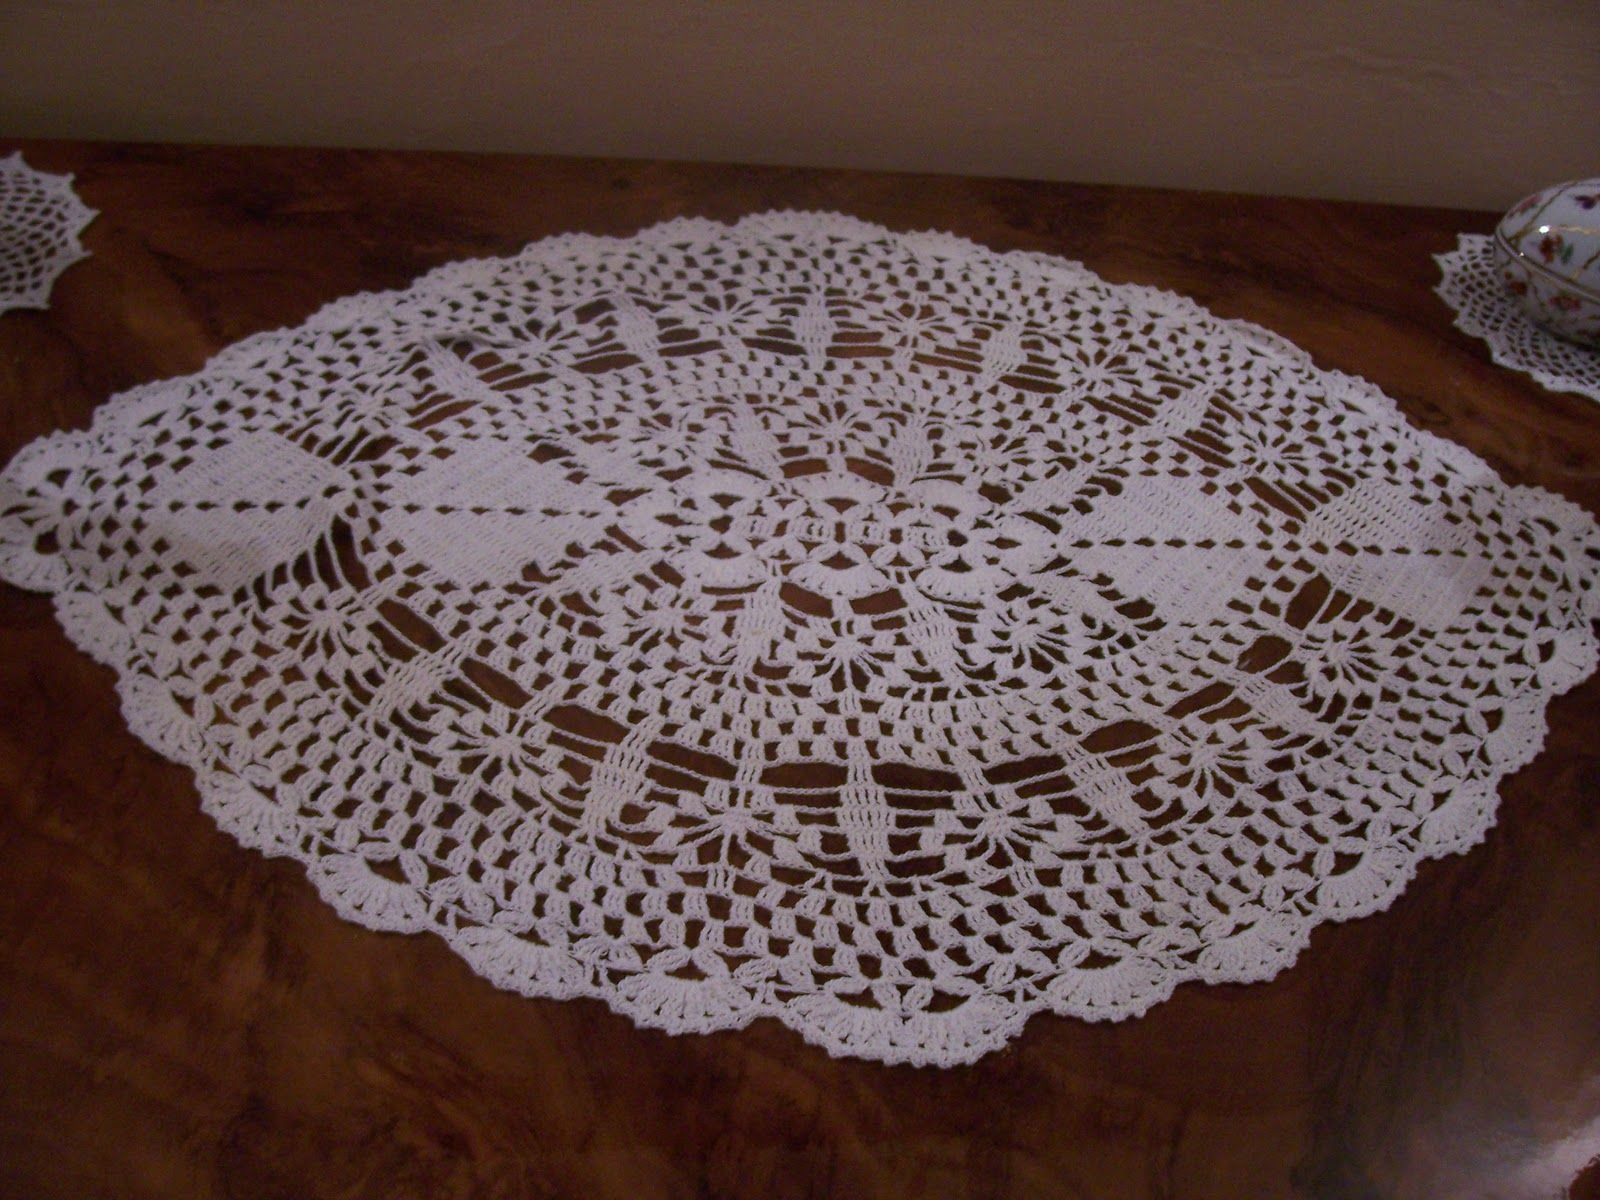 Crochet pattern central free doily crochet pattern link crochet pattern central free doily crochet pattern link directory bankloansurffo Images